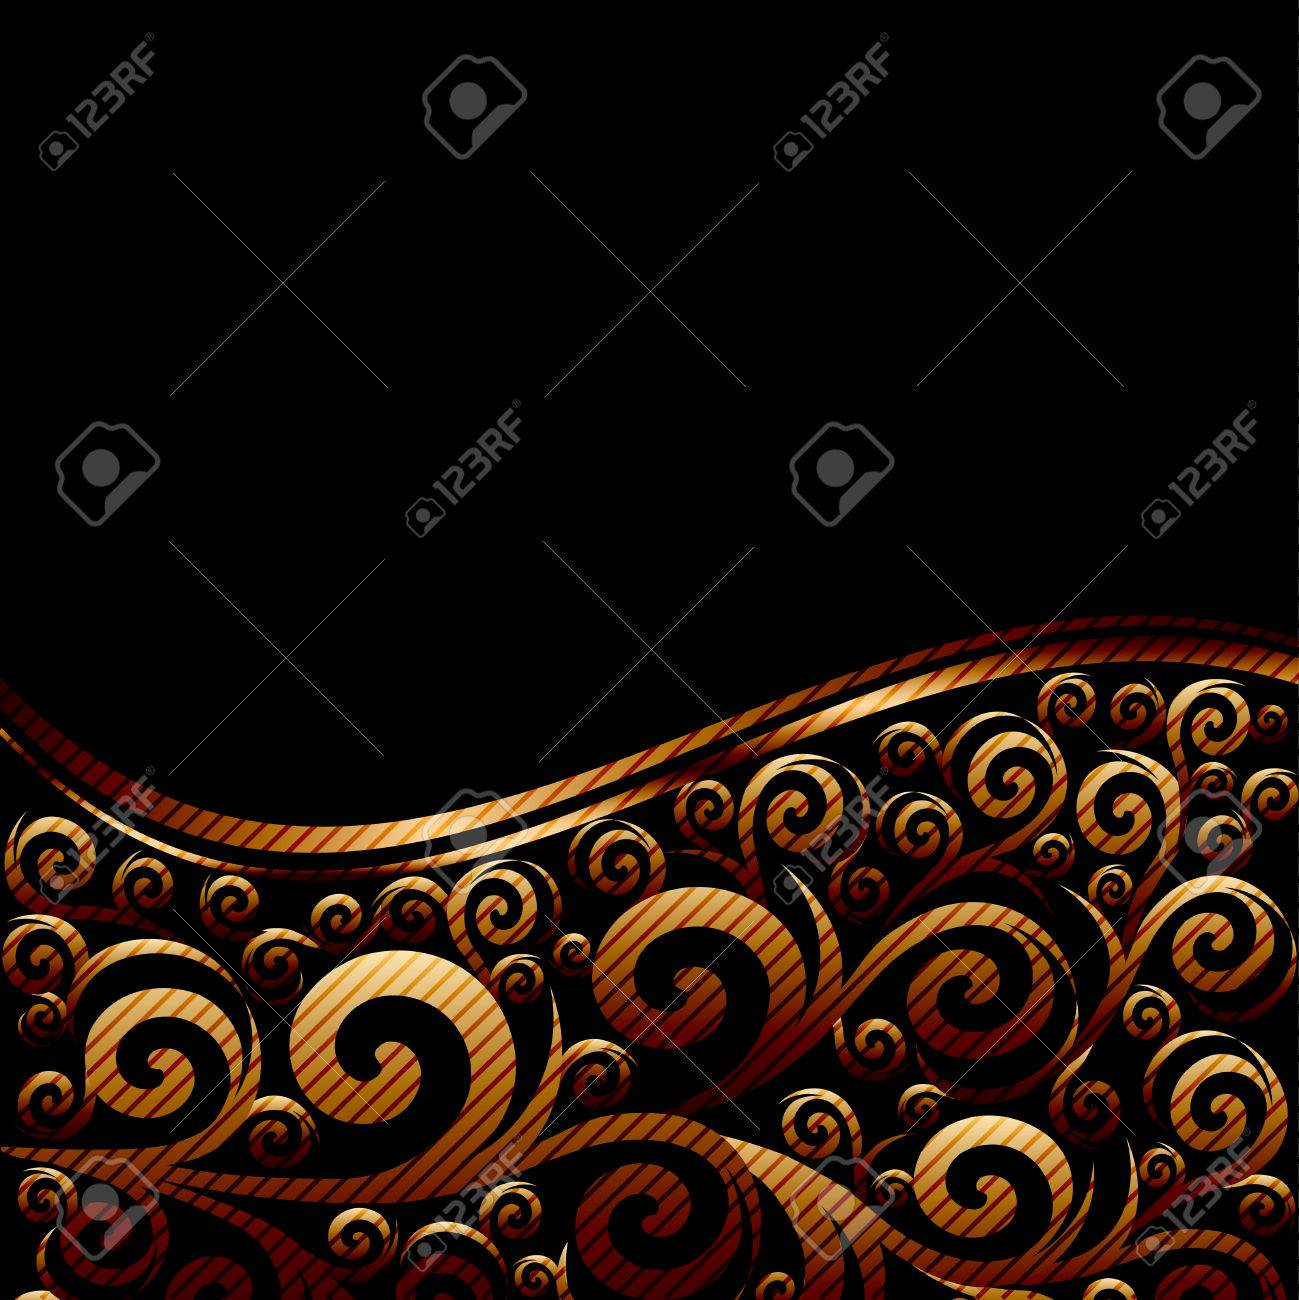 illustration of an abstract striped ornament with waves Stock Vector - 8483036